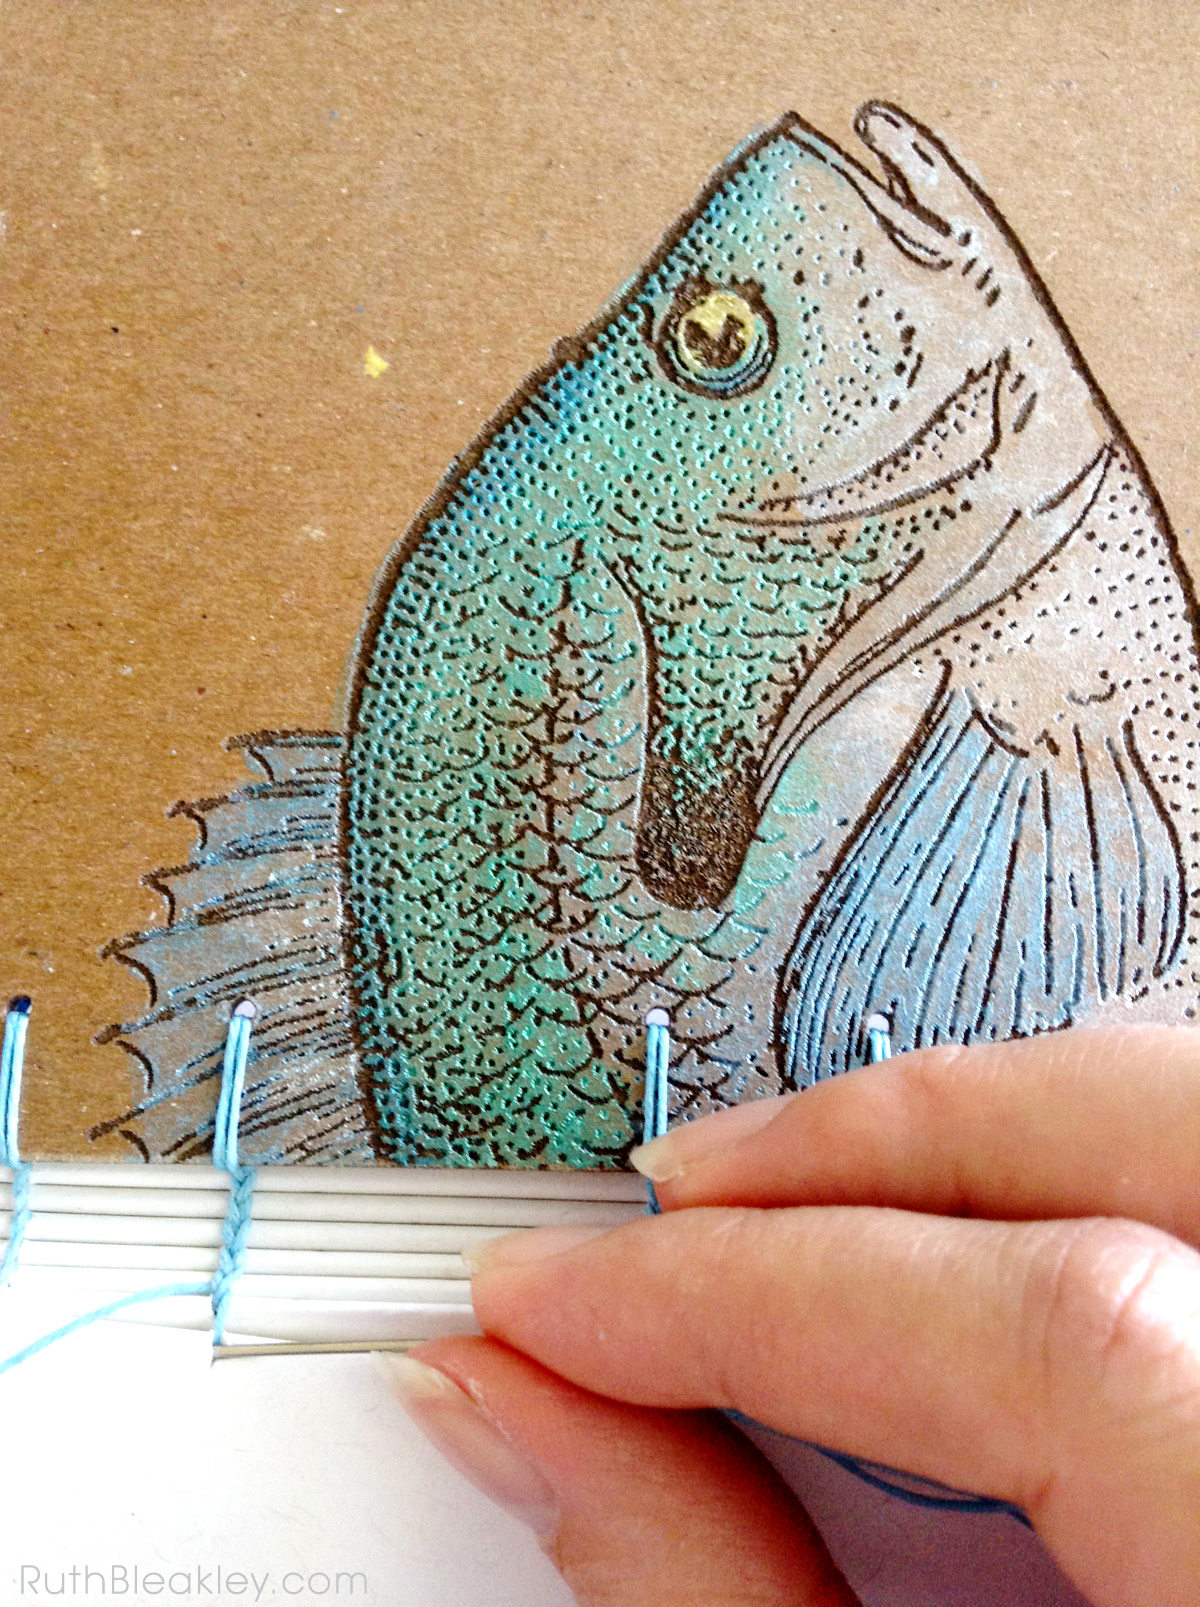 Sewing books by hand - Fish Journal made by bookbinder Ruth Bleakley